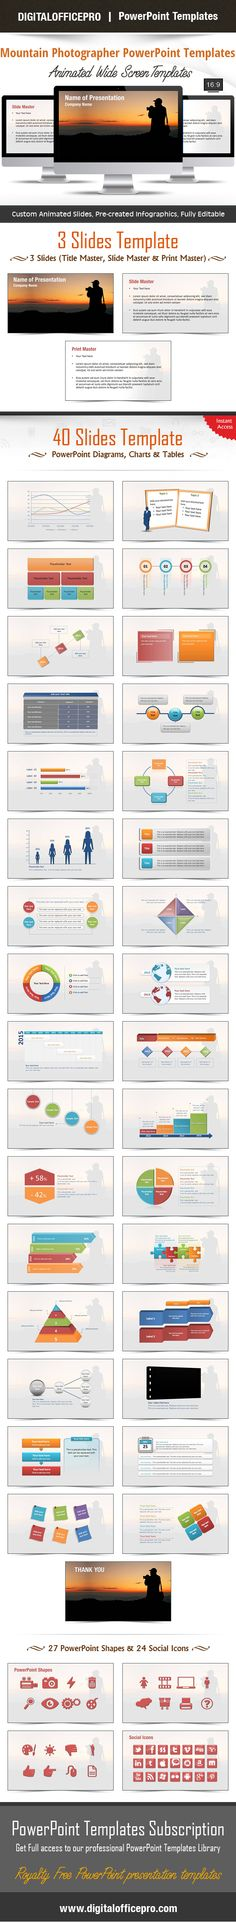 Solution 3D PowerPoint Template Backgrounds D, Shape and 3d - 3d powerpoint template